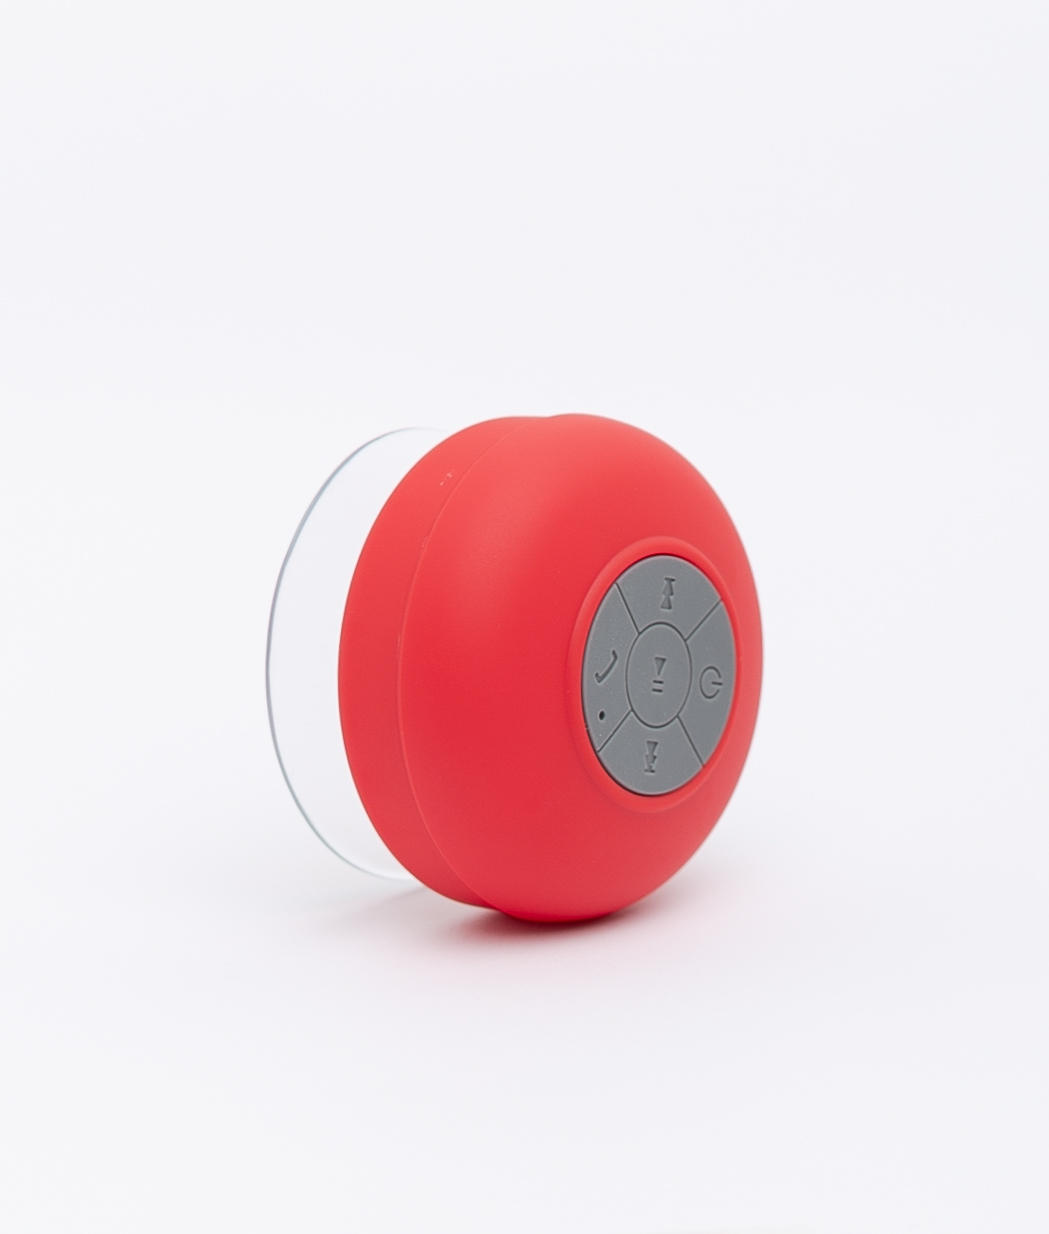 Altoparlante wireless Delta - Rosso